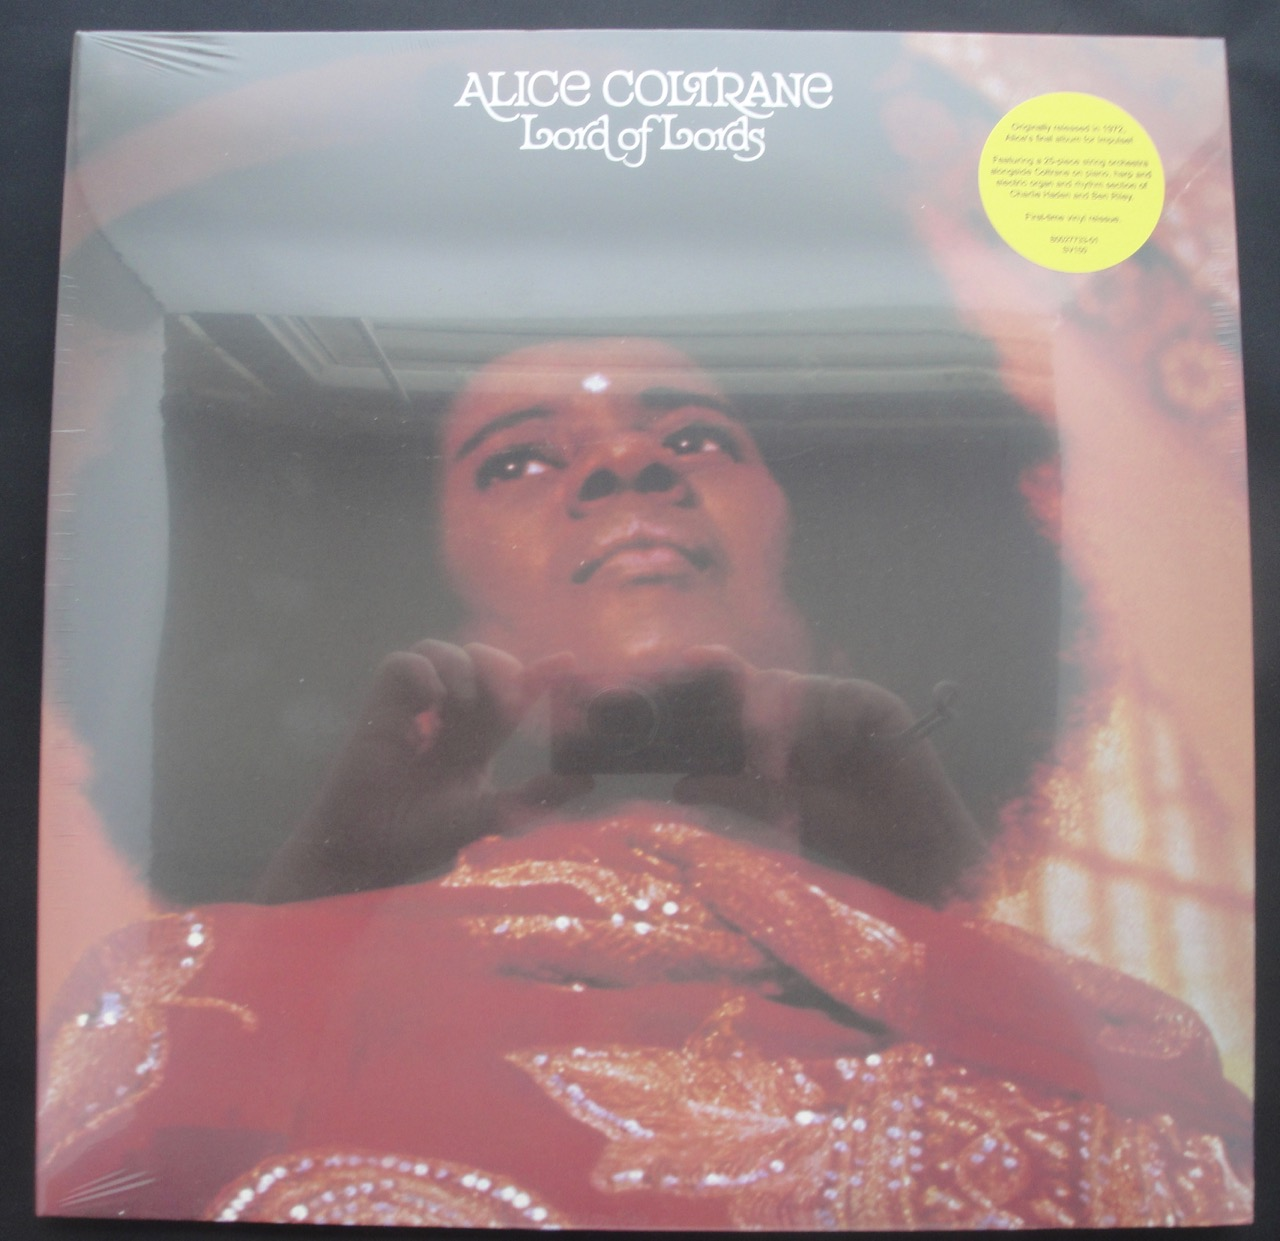 Alice Coltrane - Lord Of Lords - Remastered, First-time Reissue, Superior Viaduct, 2018